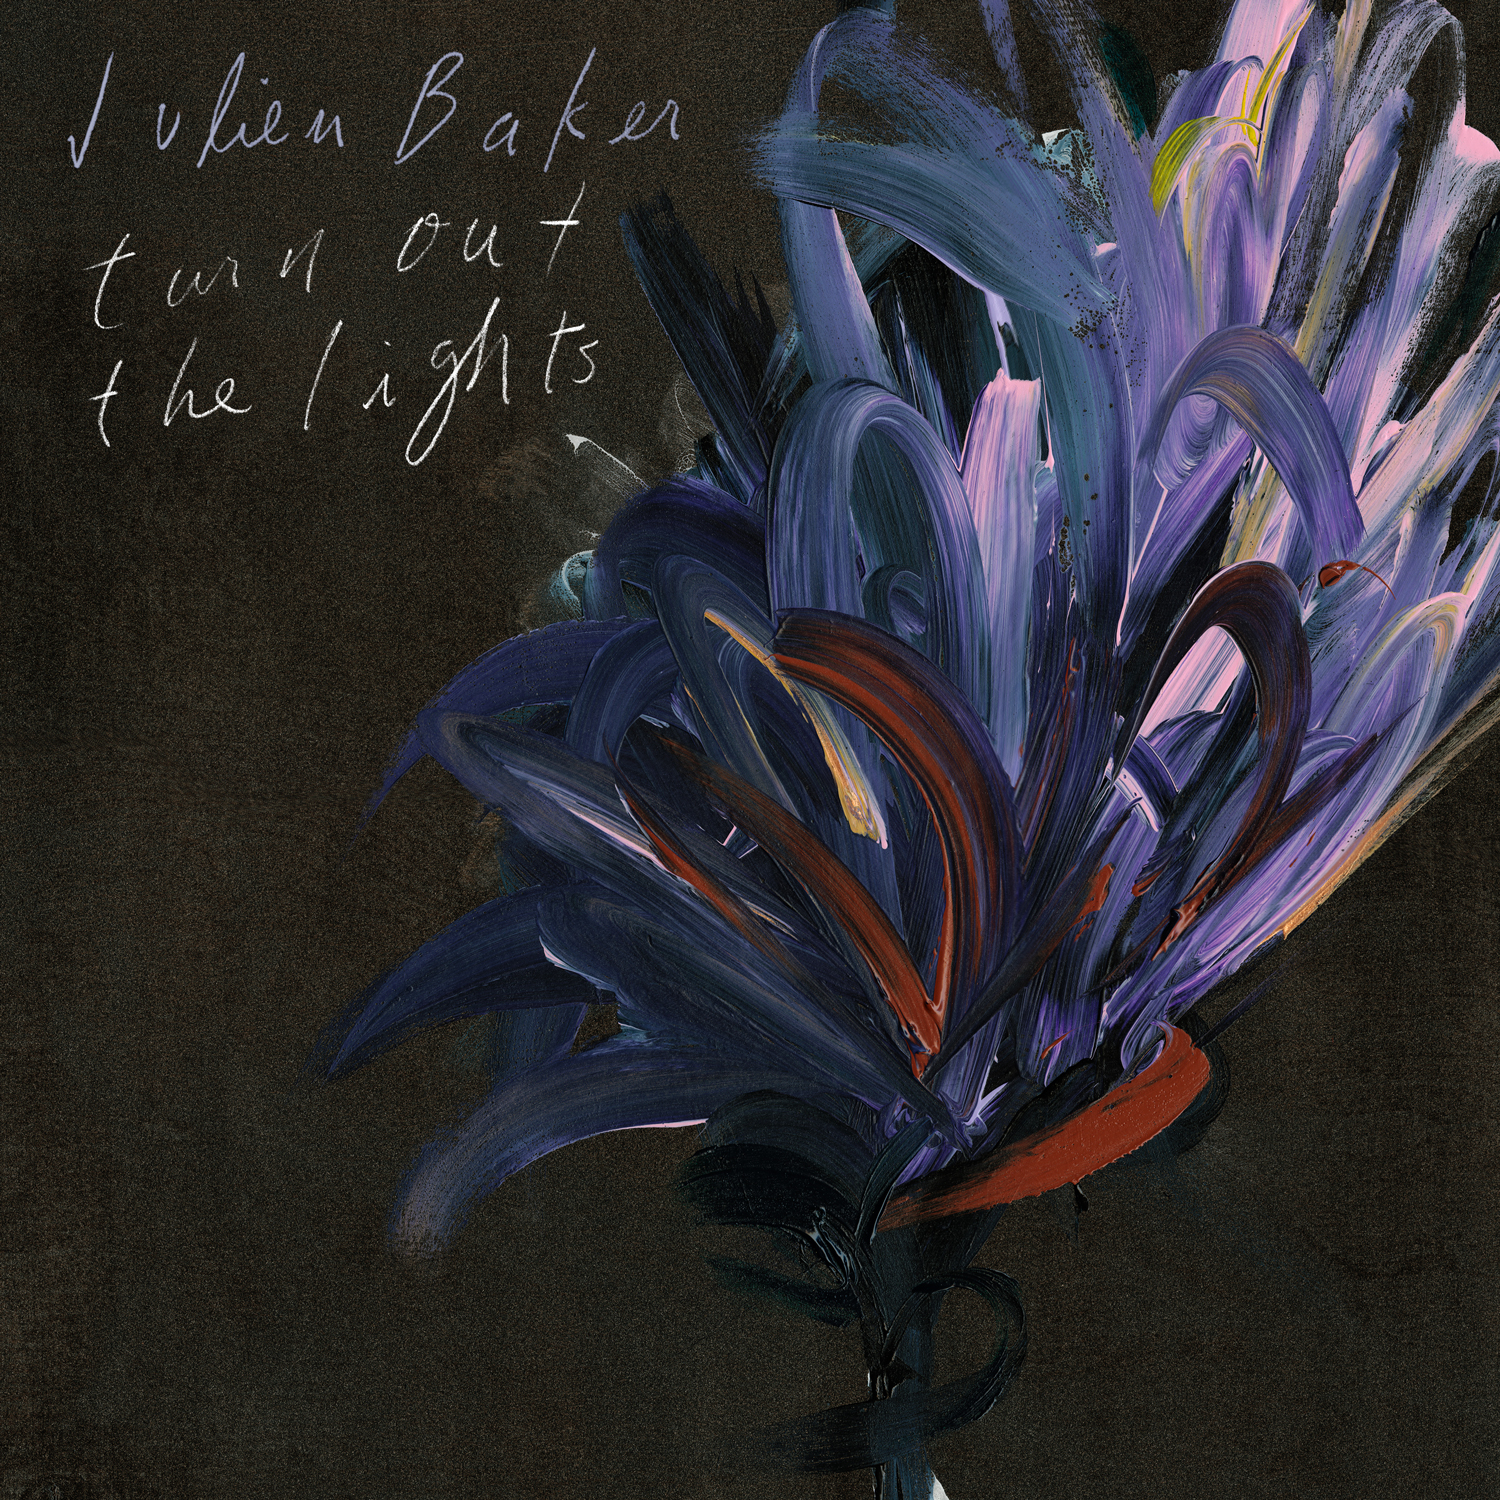 Julien Baker Turn Out The Lights Art.jpg